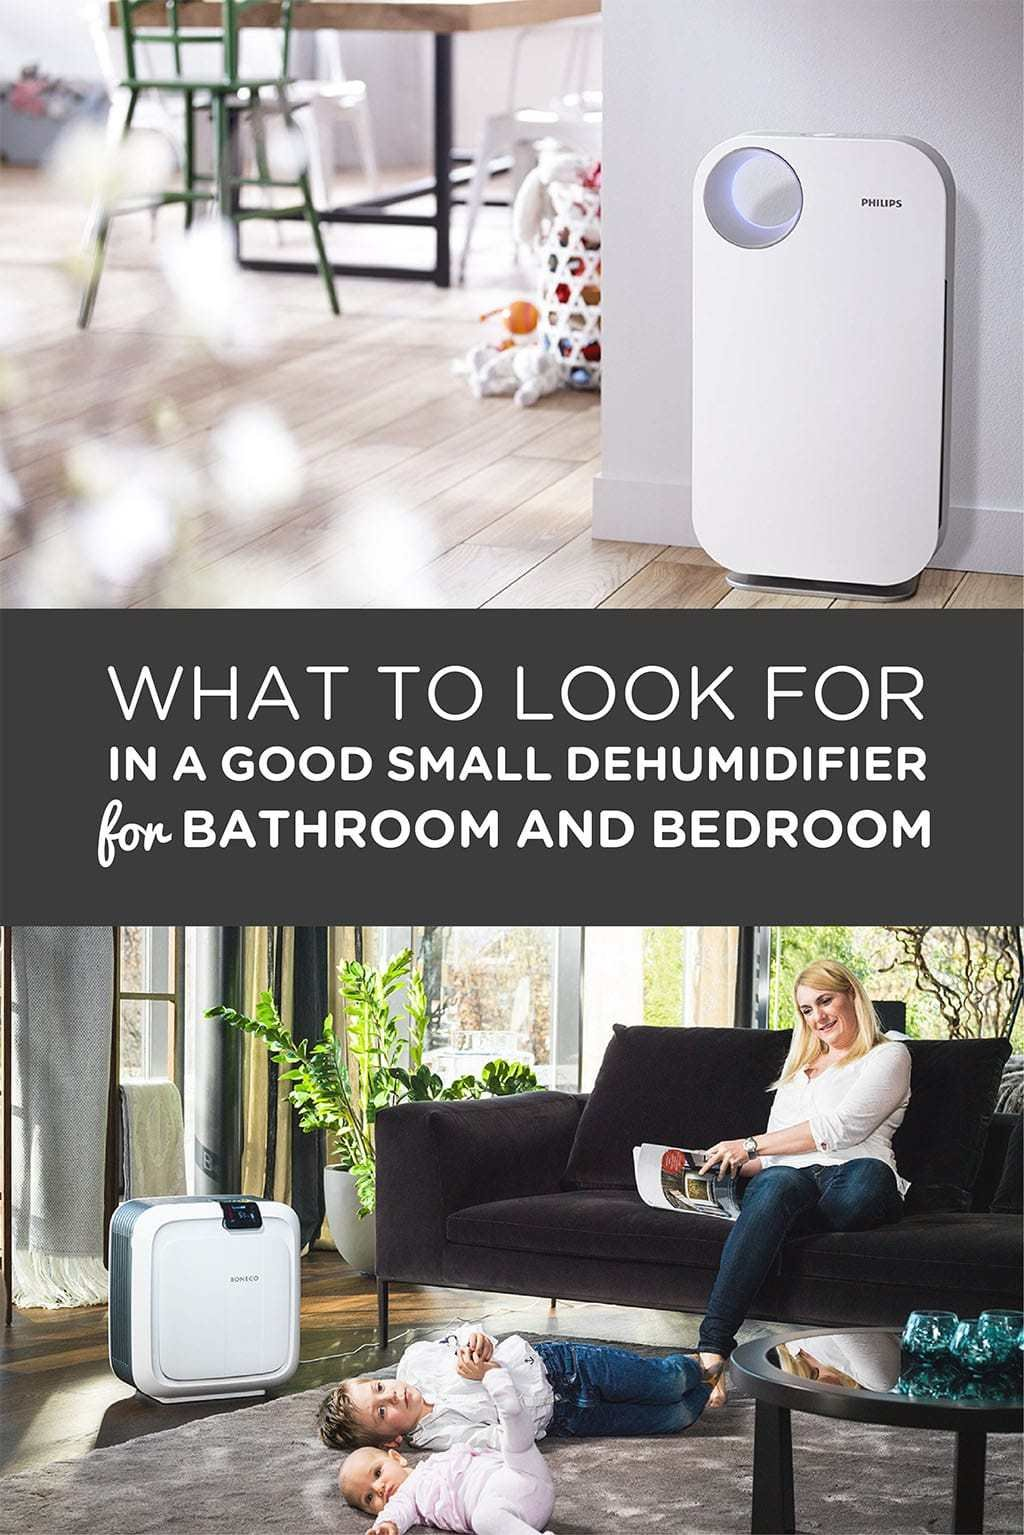 Best Small Dehumidifier For Bedroom And Bathroom 2019 With Pictures